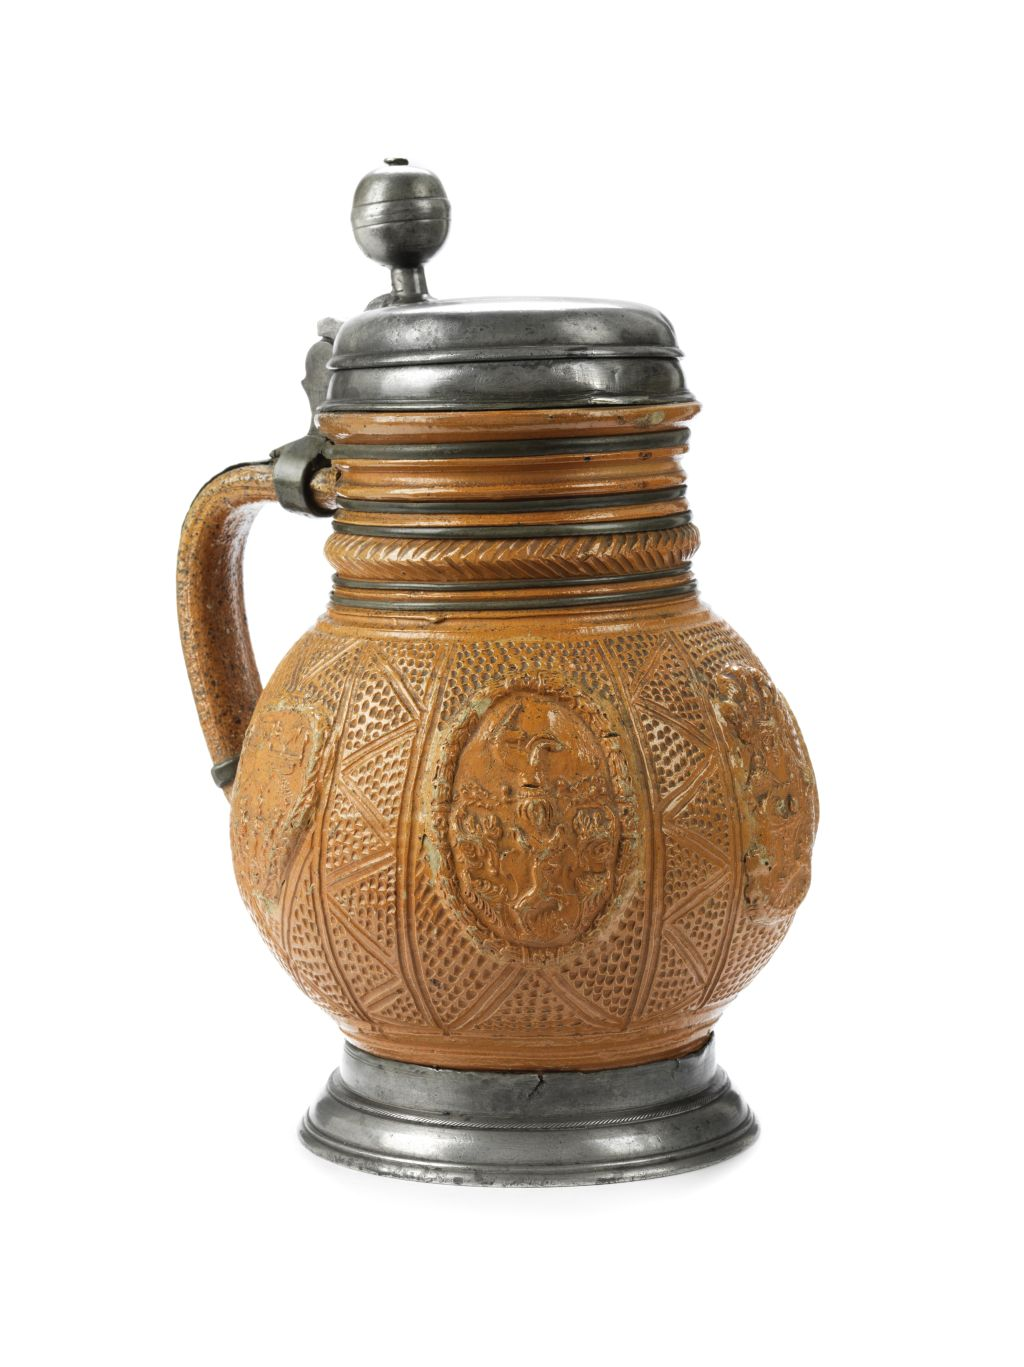 17th century Altenburg Saltglazed Stonware Jug ca 1680